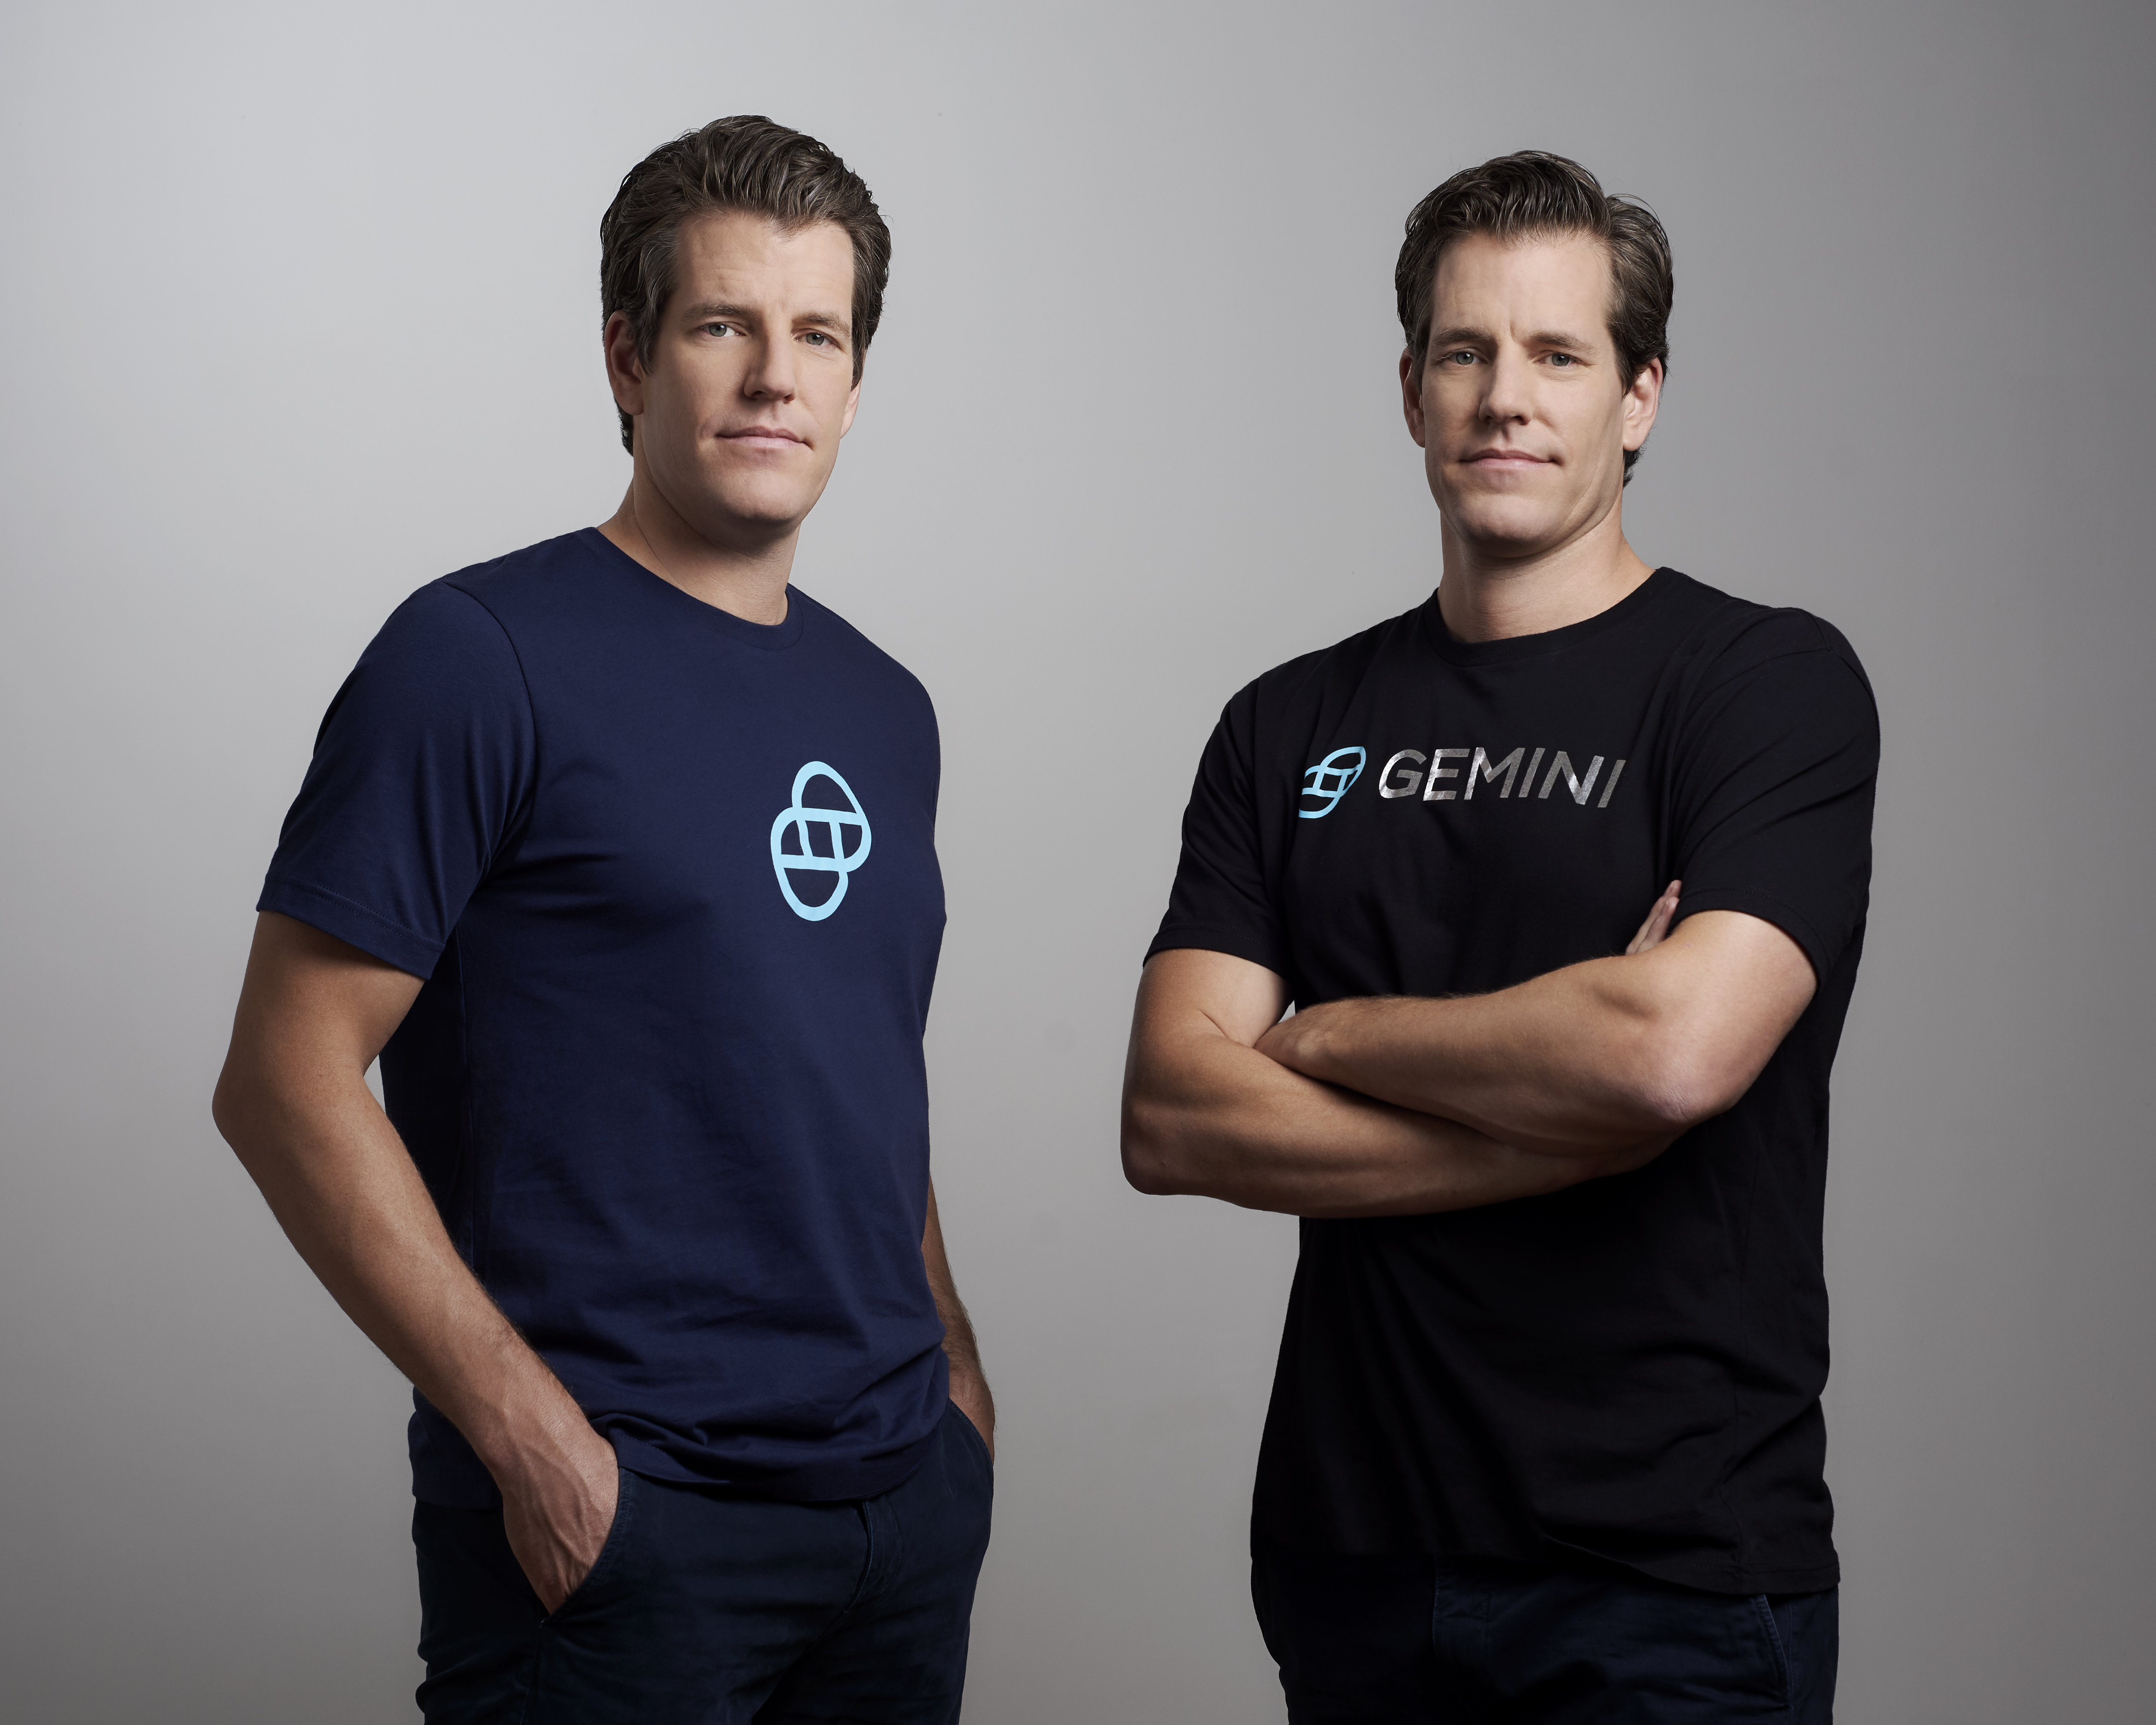 Gemini is launching a credit card with bitcoin rewards – TechCrunch